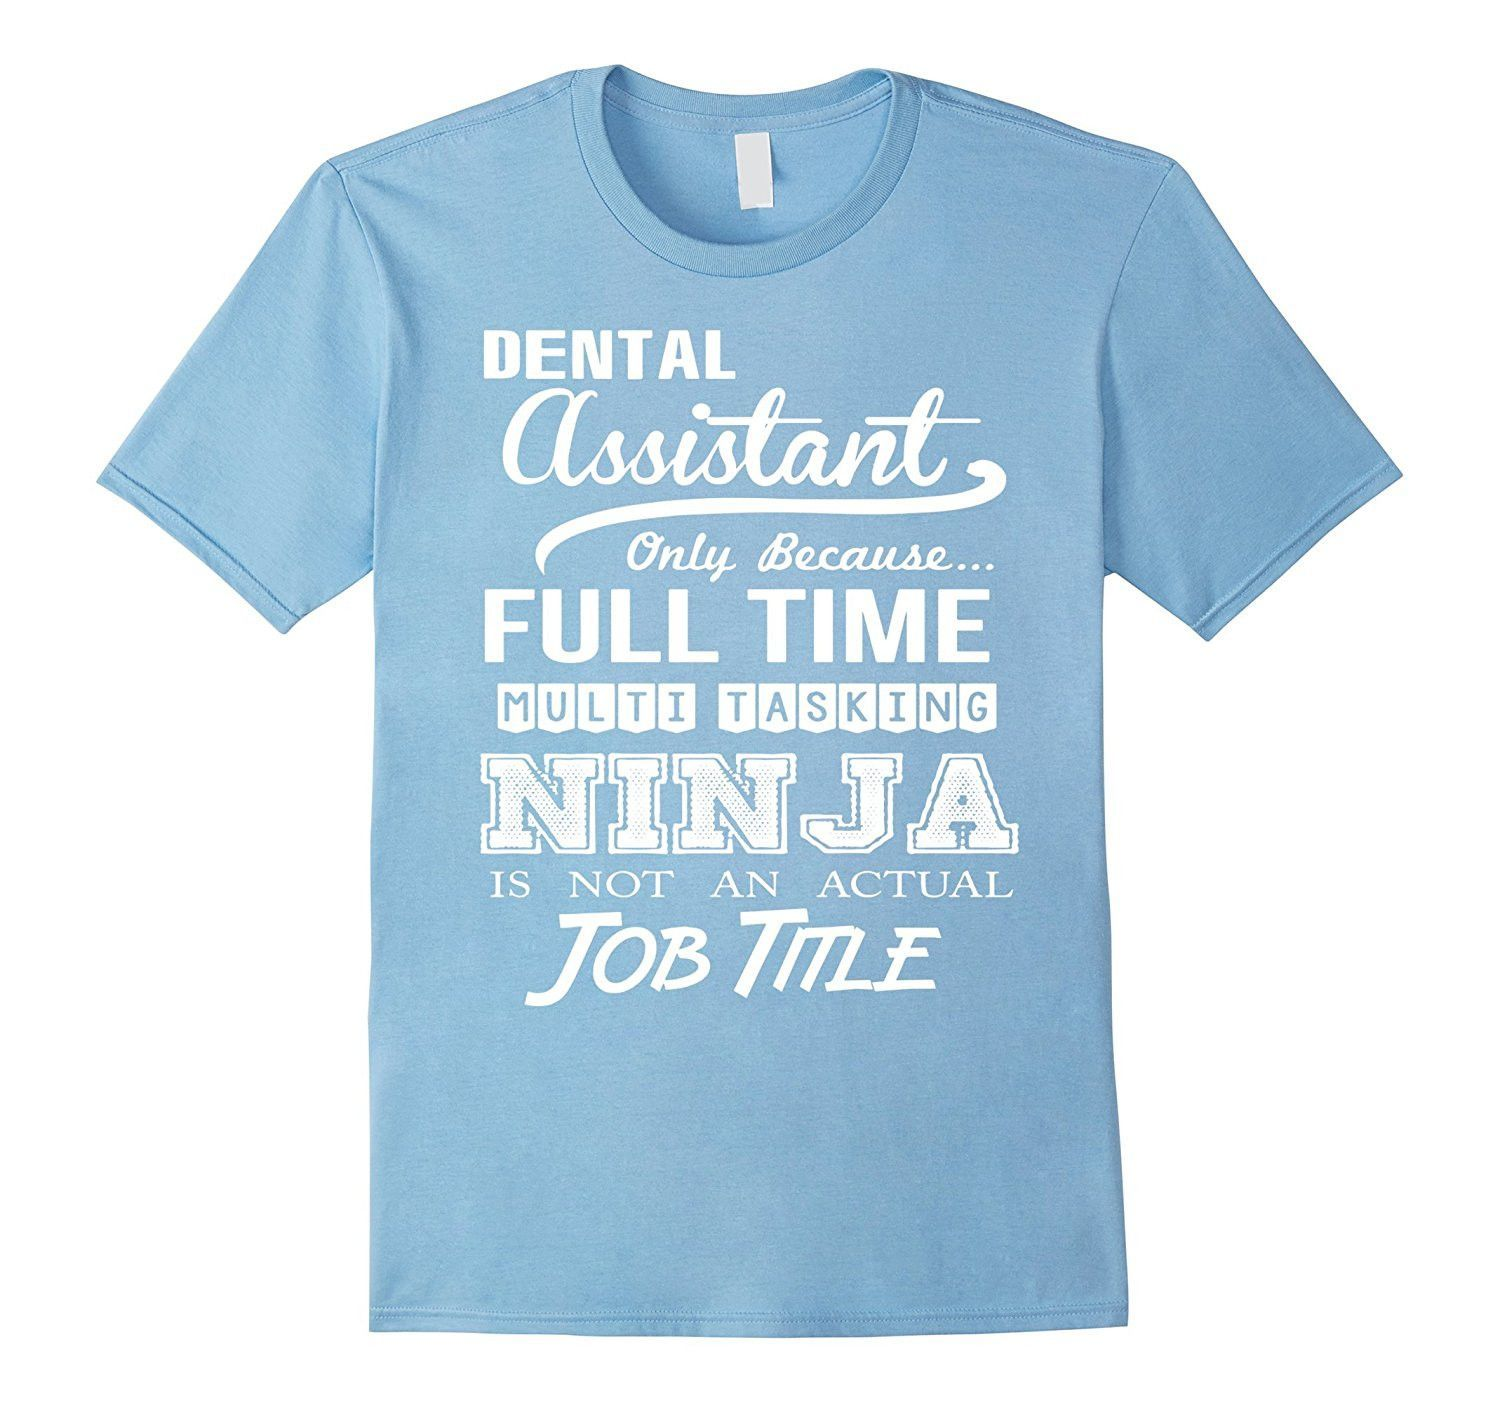 Dental Assistant Job Title Shirt  Dental Assistant Jobs